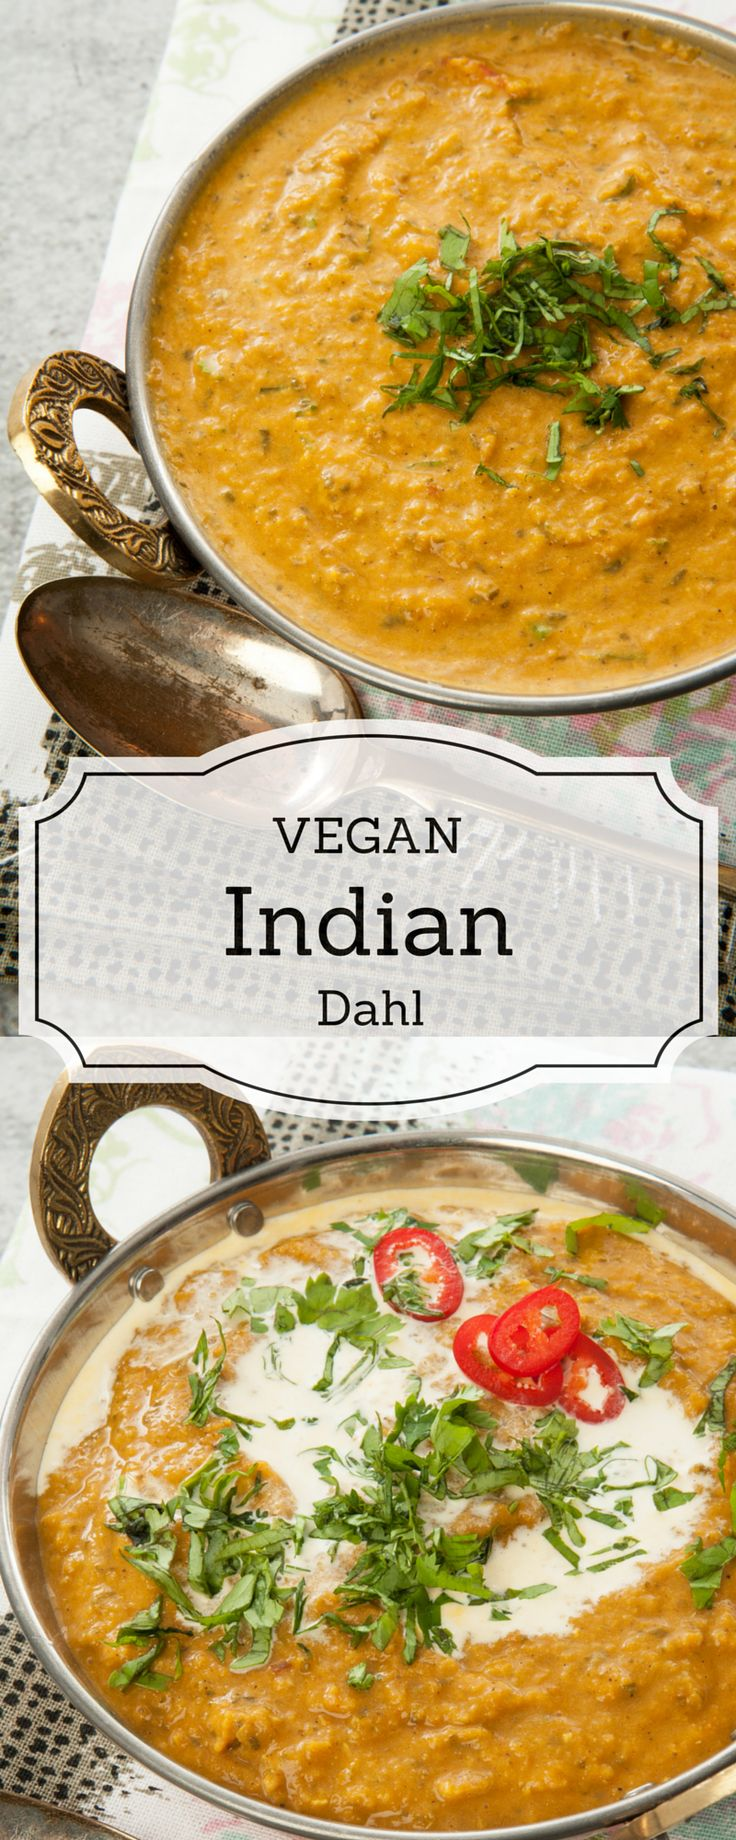 Authentic Indian Dahl Recipe - The perfect comfort food. Vegan, vegetarian…